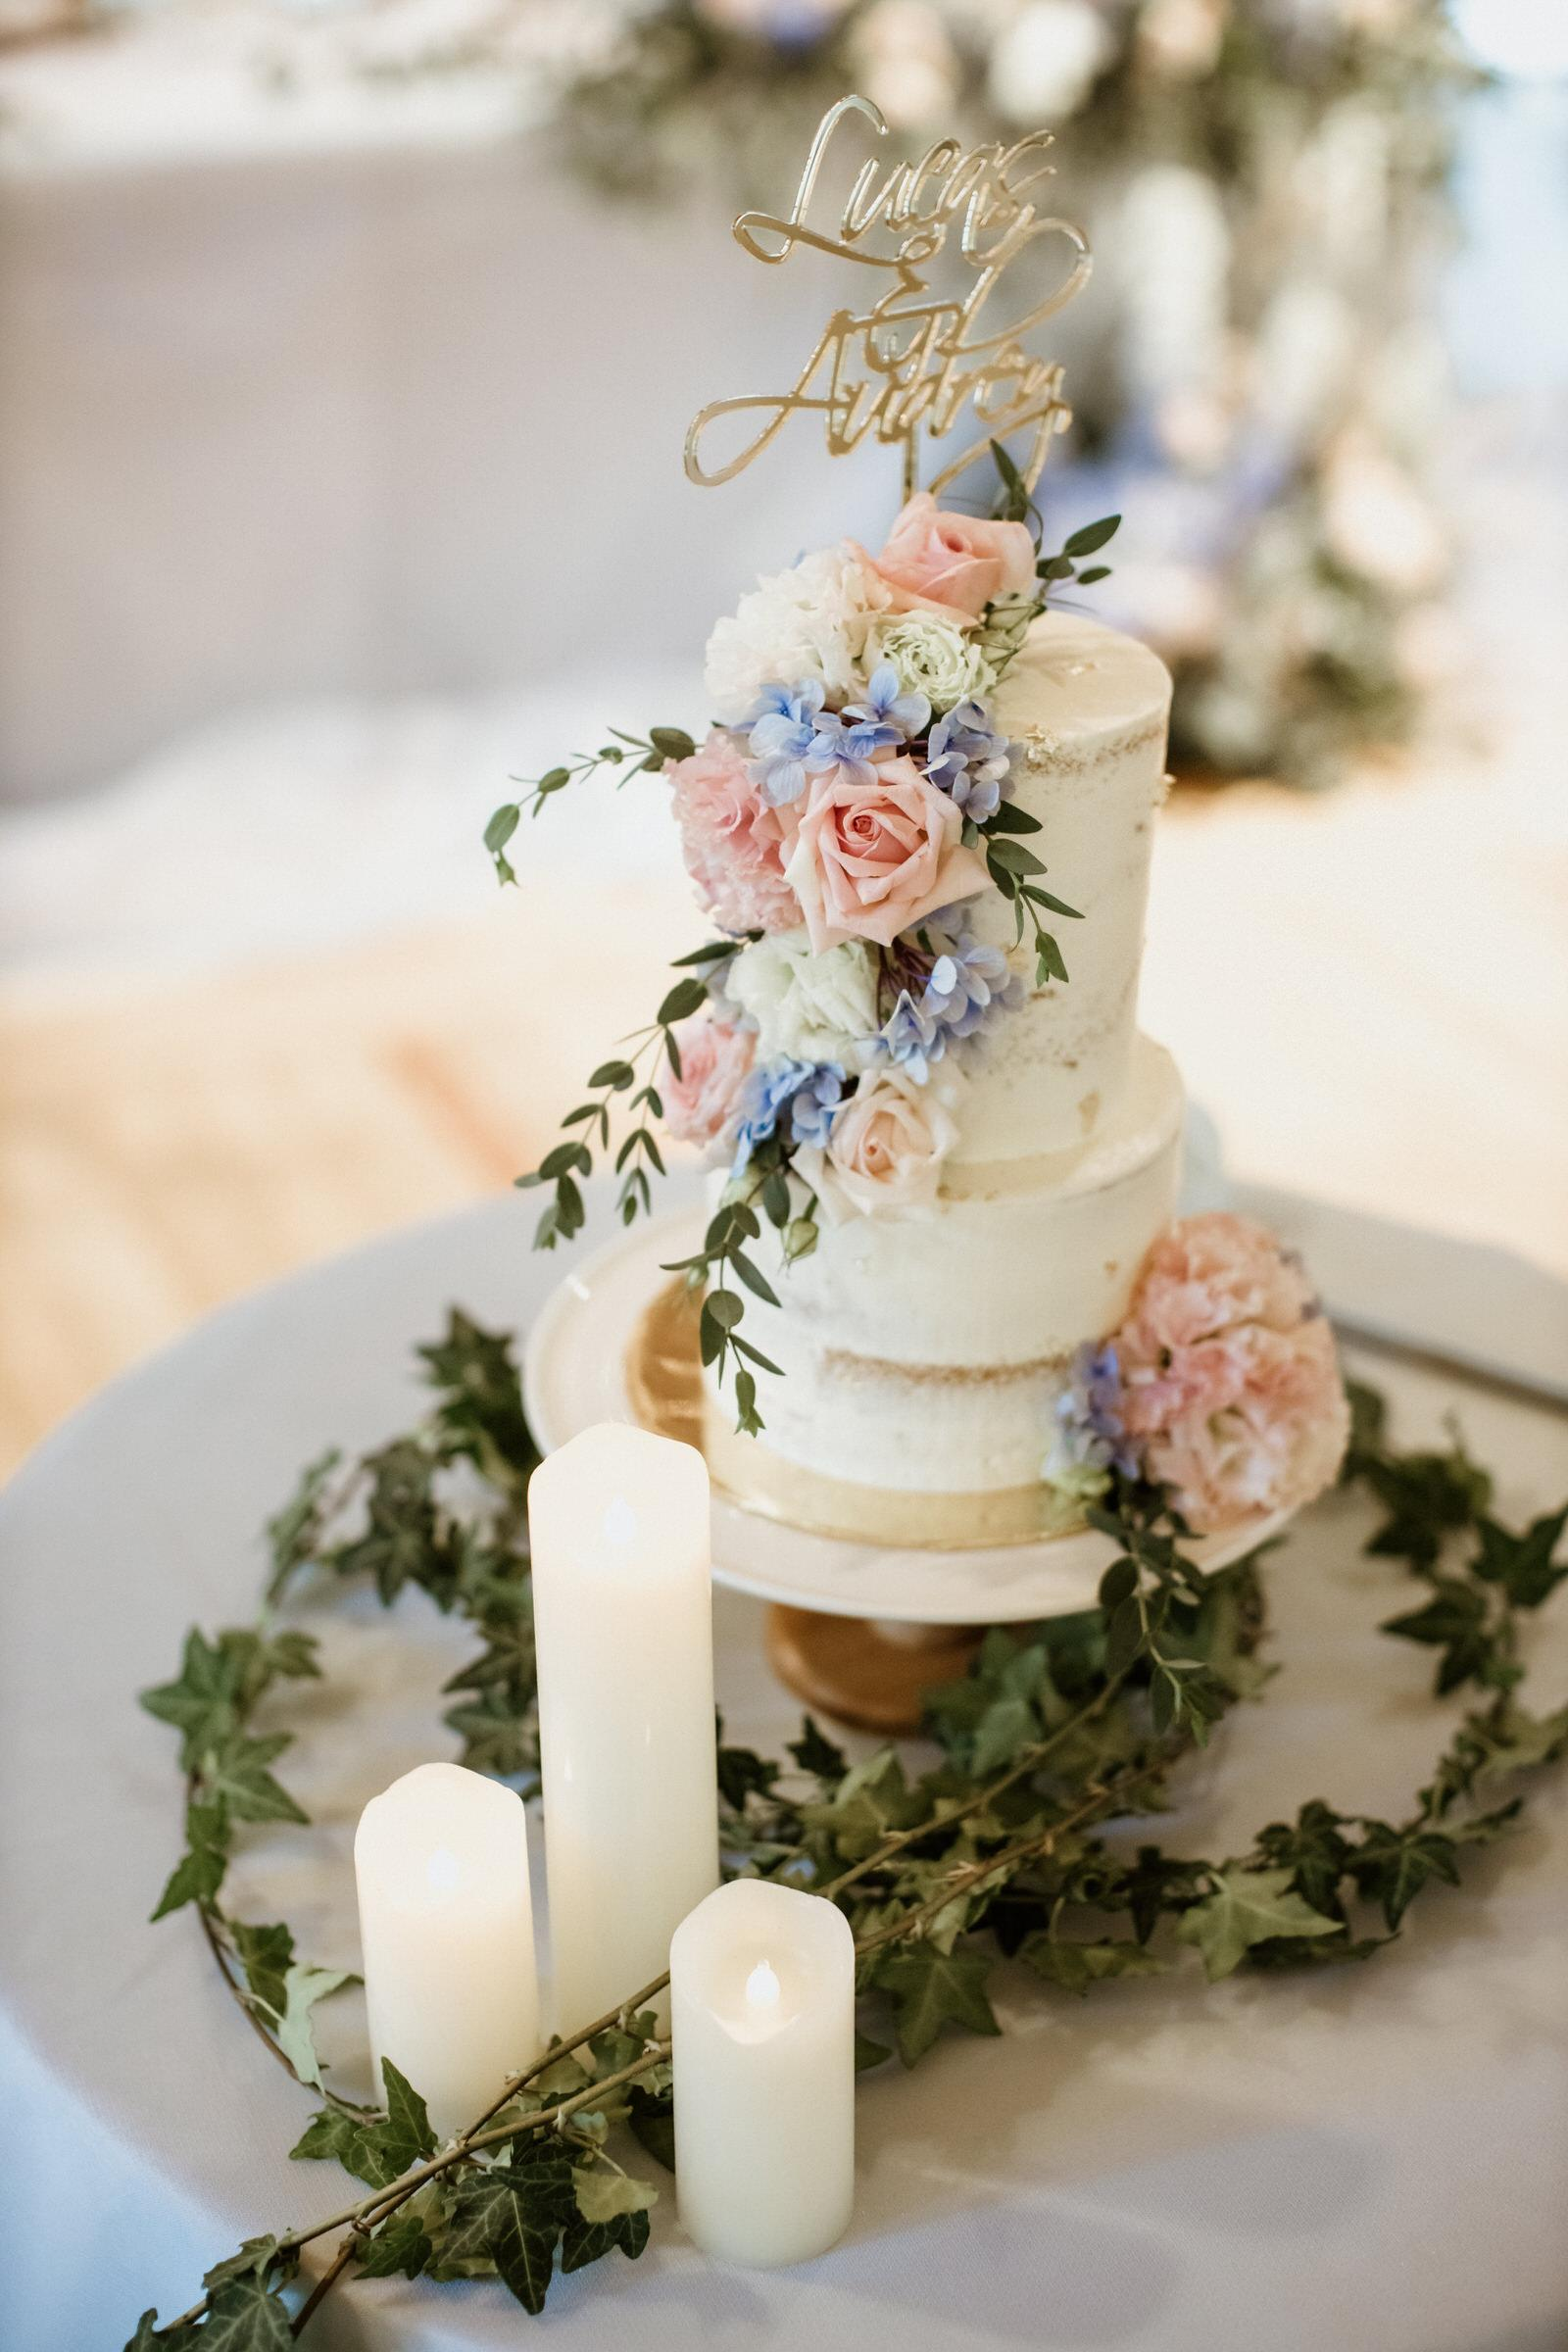 Beautiful Wedding Cake Tanarimba Gold and Rustic Garden Weding Janda baik Decoration wooden chair feather flowers Cliff Choong Photography